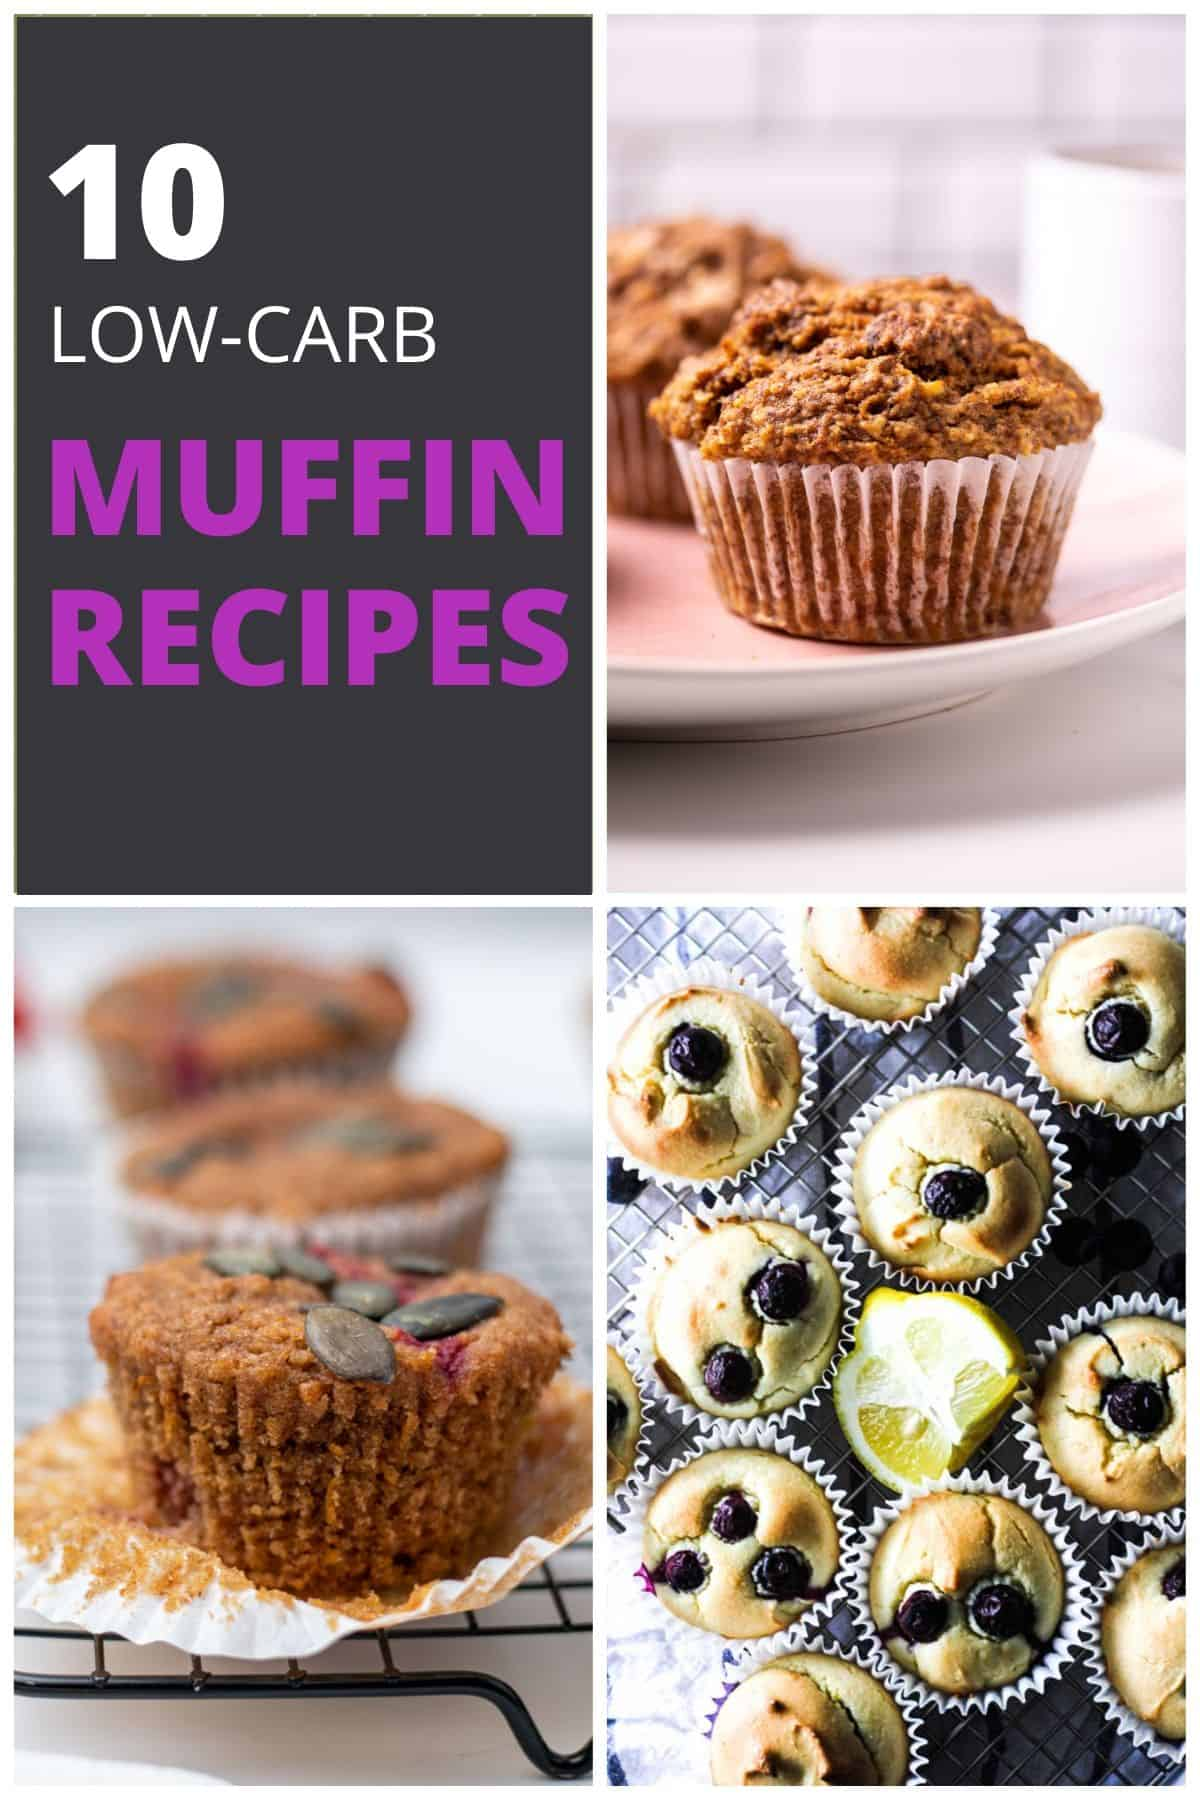 10 low-carb muffin recipes pin